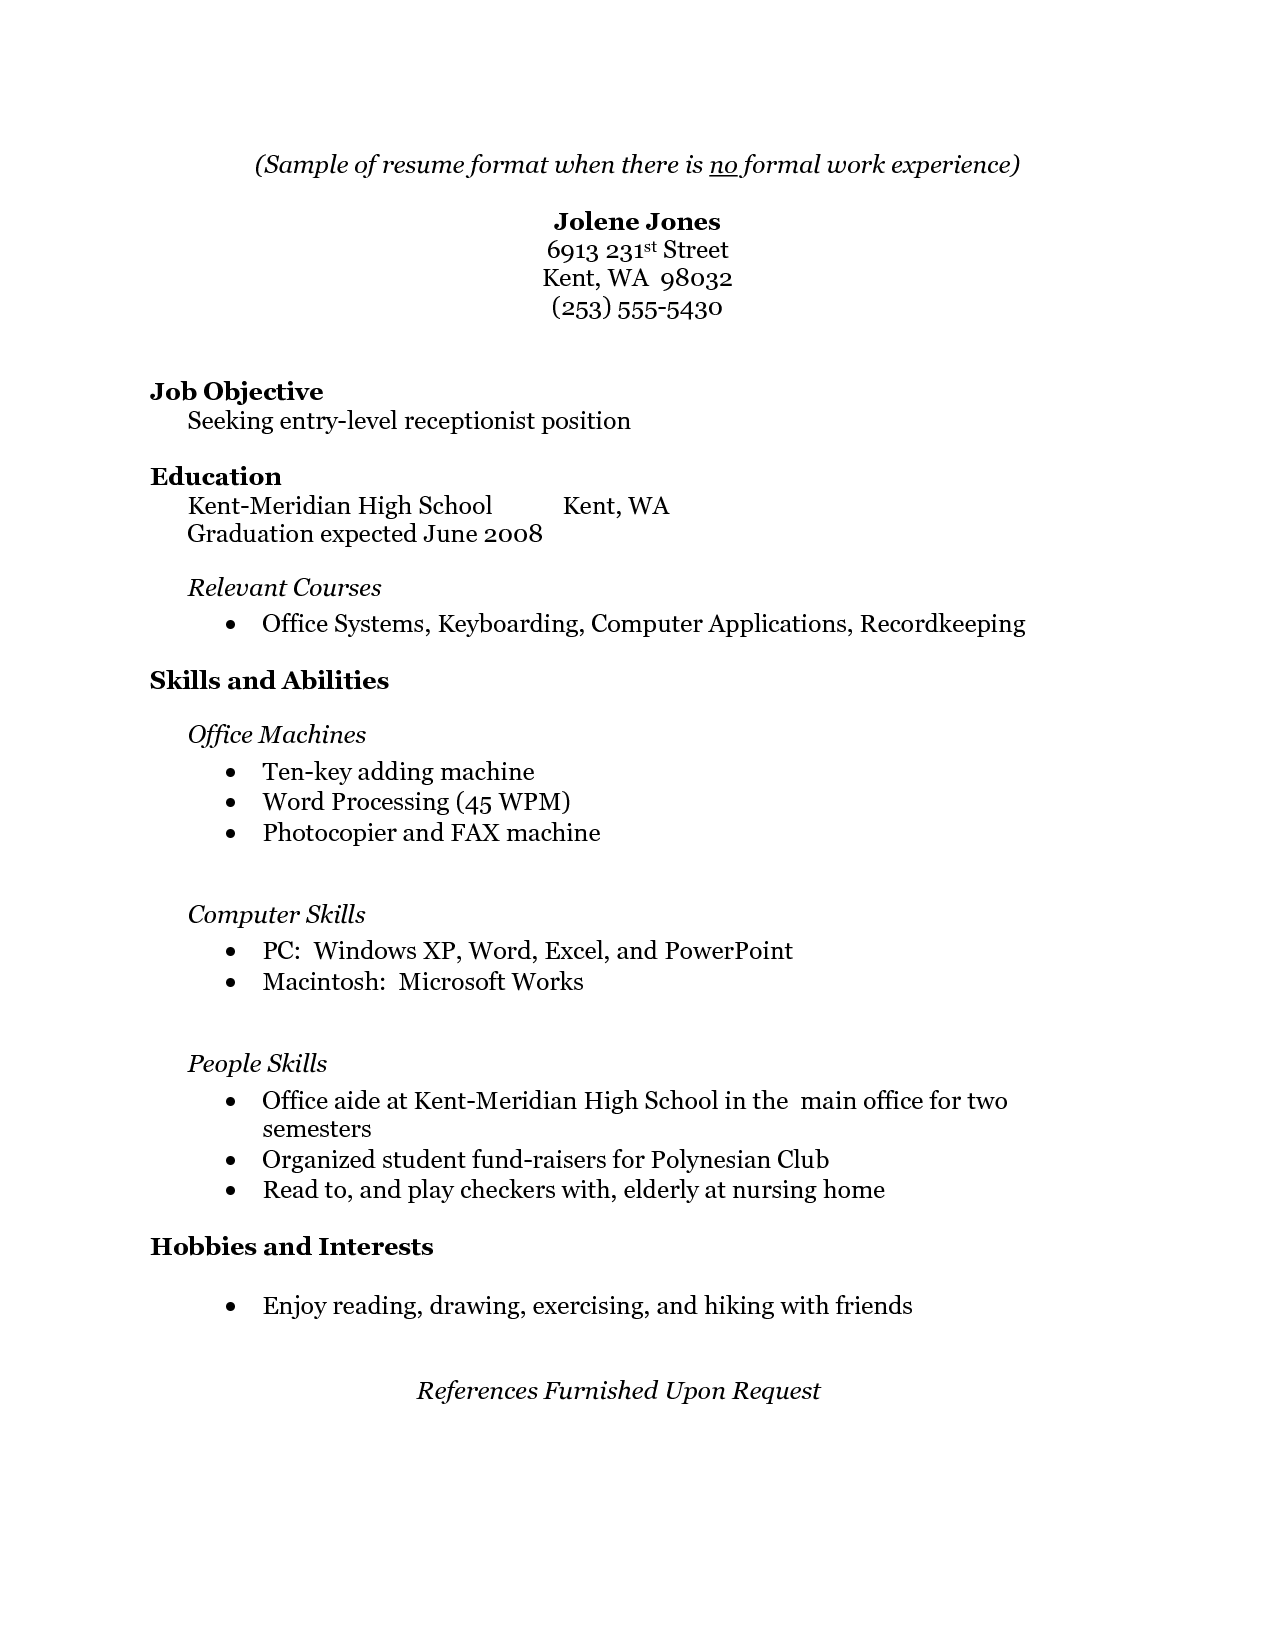 How To Create A Resume With No Work Experience Sample Boslu